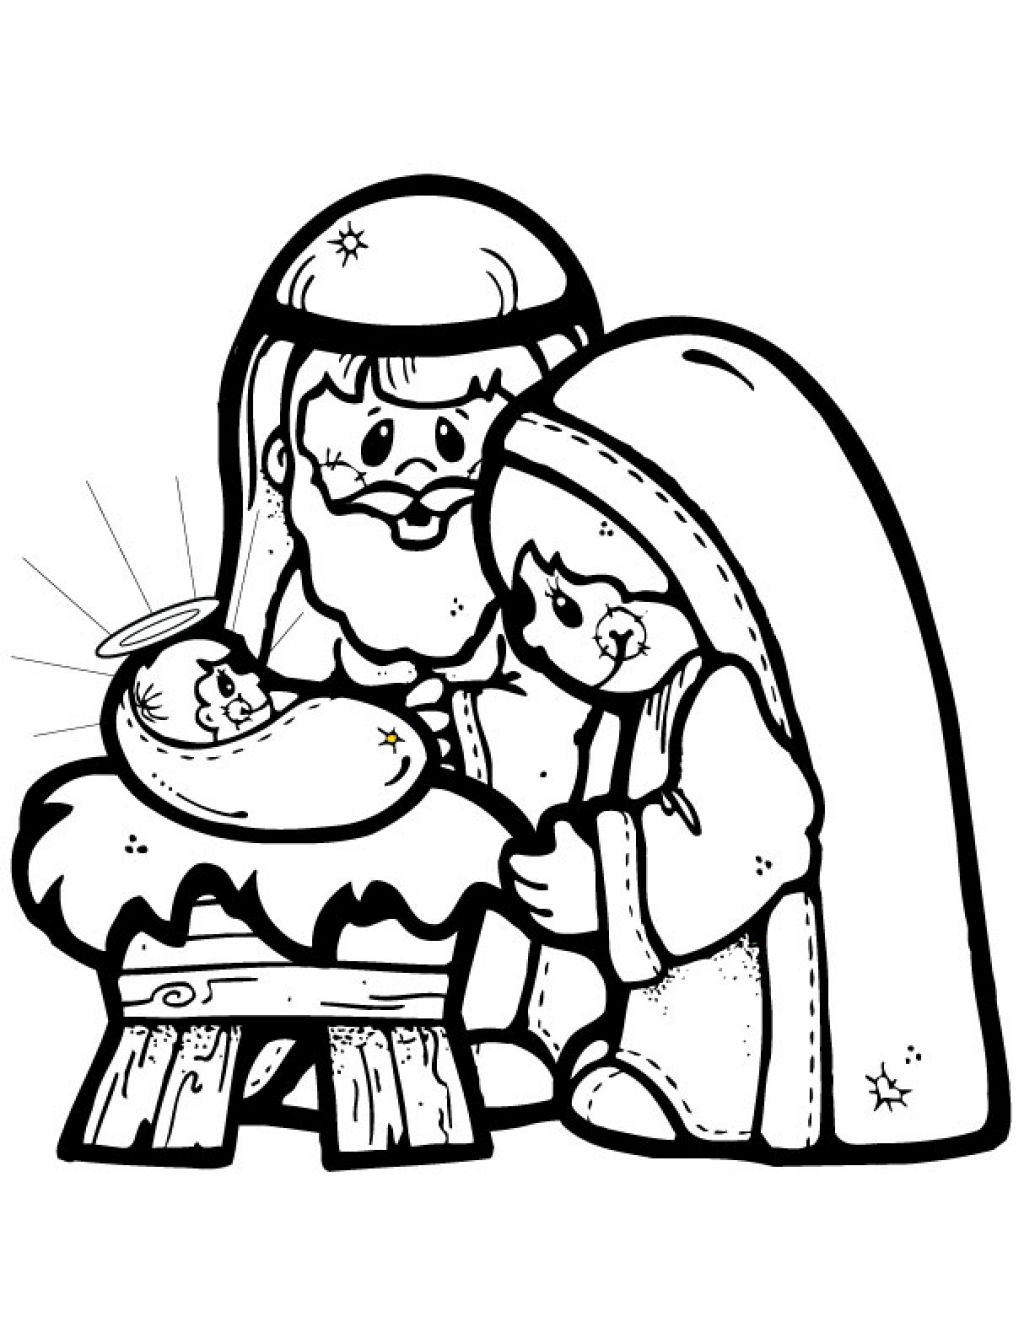 printable nativity scene coloring pages nativity scene coloring ...